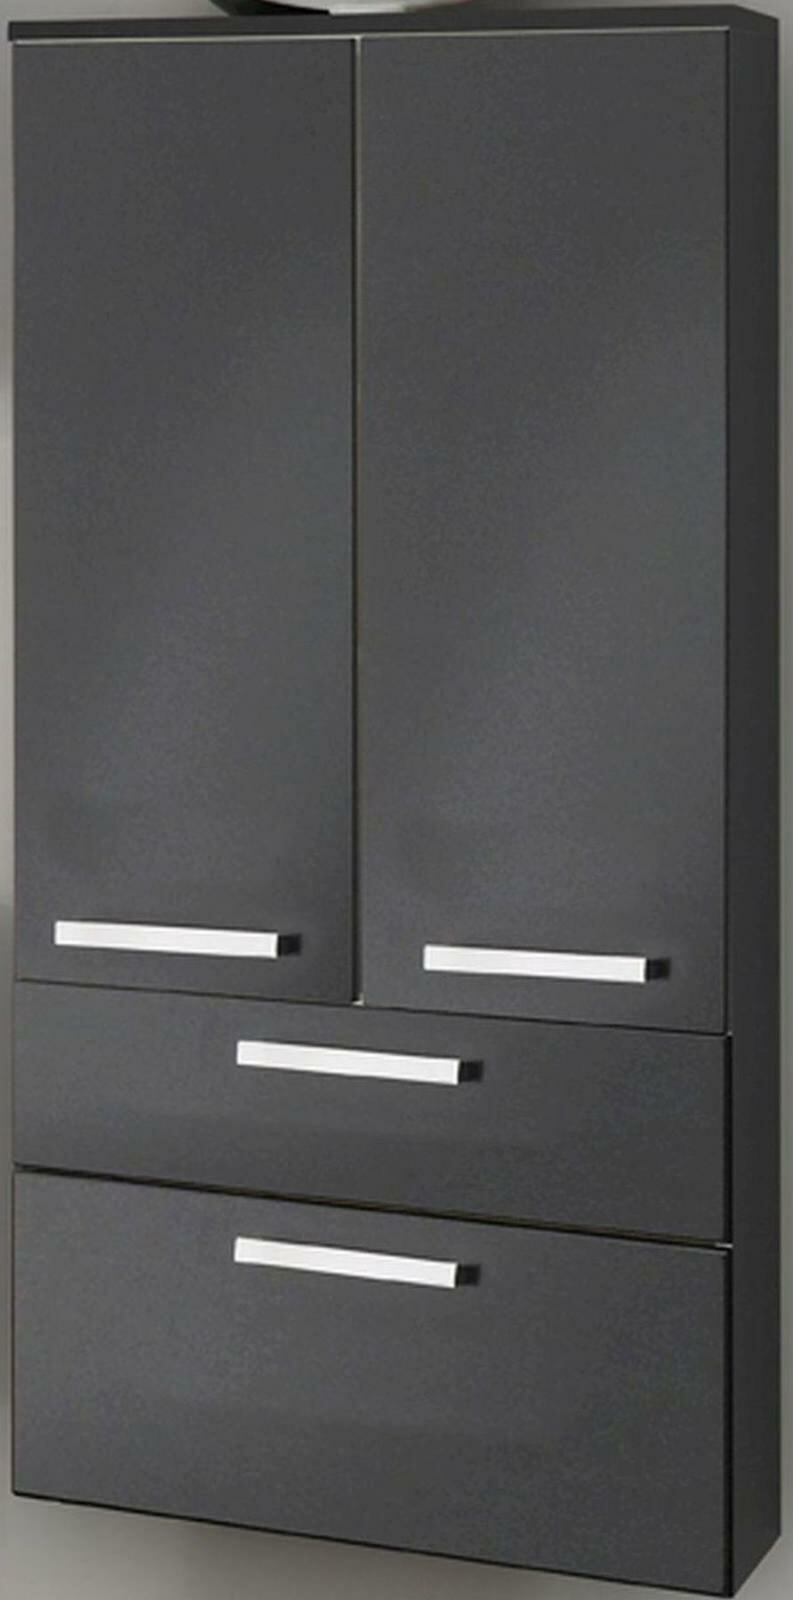 bad hochschrank 131 x 60 x 32 cm midischrank badm bel badschrank hs ram breit kaufen bei. Black Bedroom Furniture Sets. Home Design Ideas